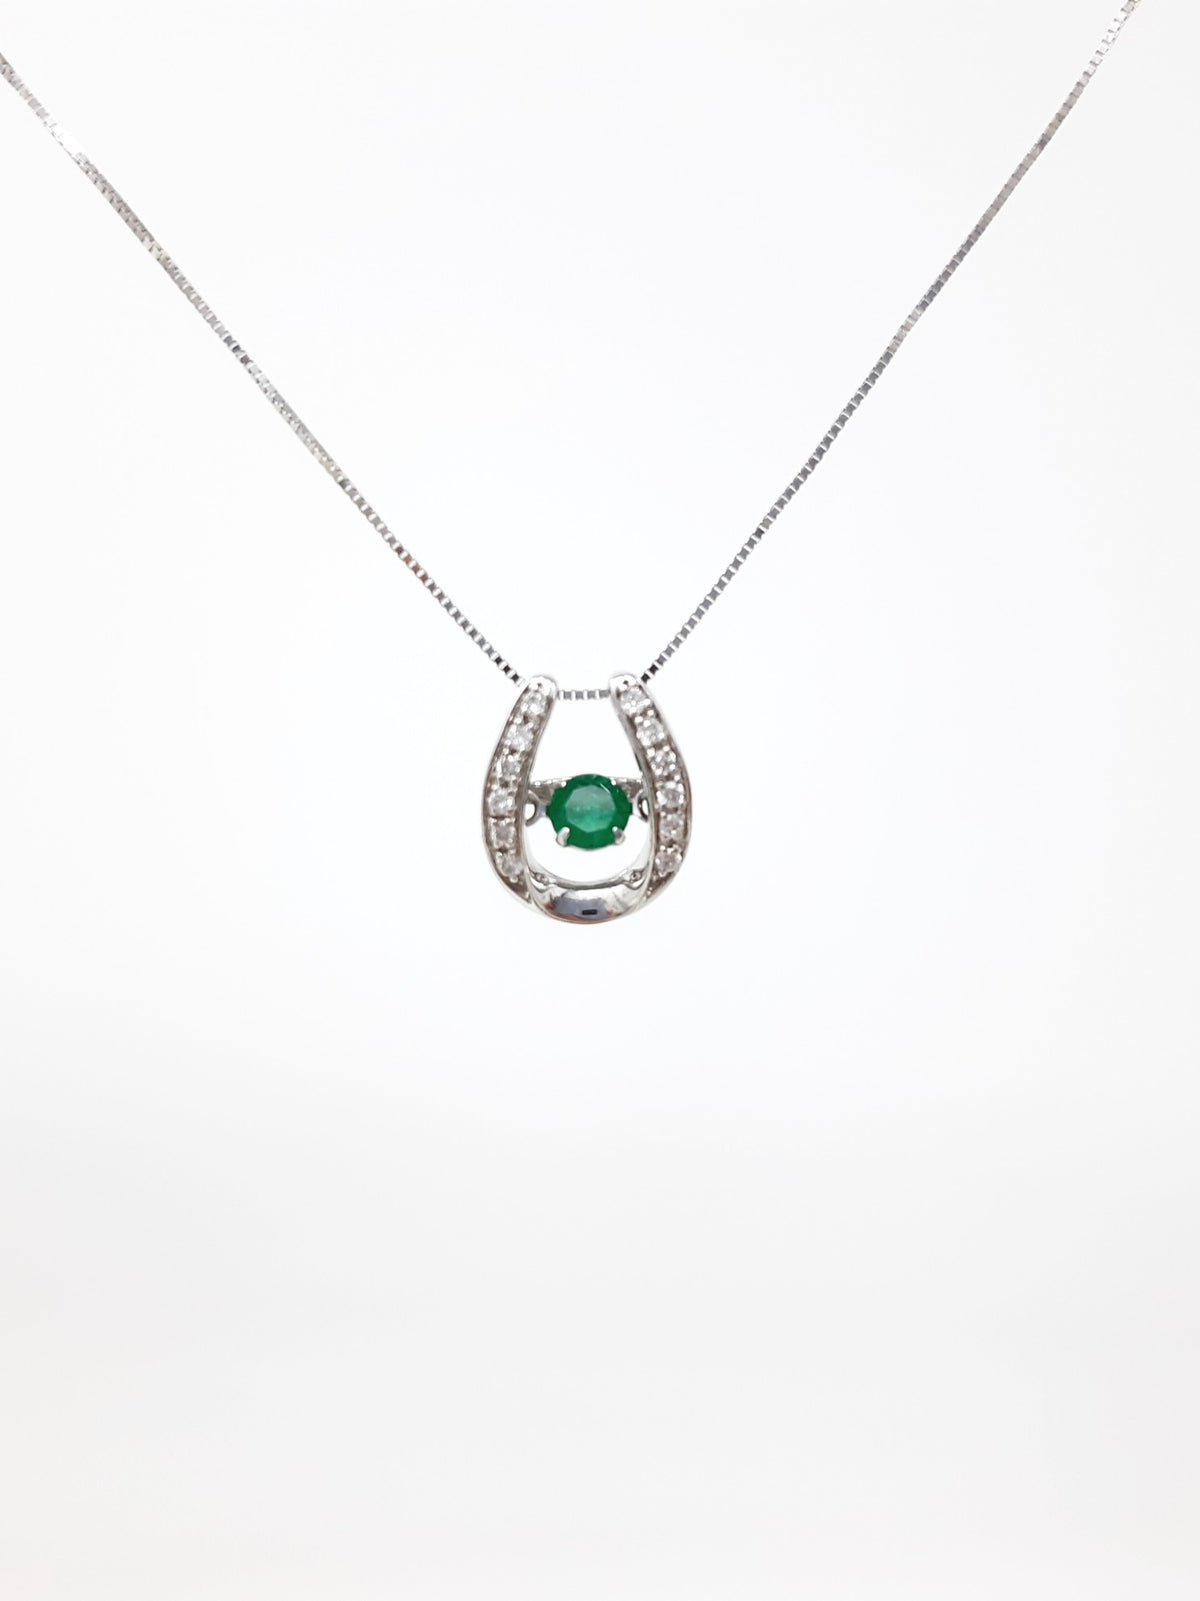 10K White Gold 0.15cttw Round Cut Genuine Emerald and0.07cttw Round Cut  Diamonds Necklace, 18""